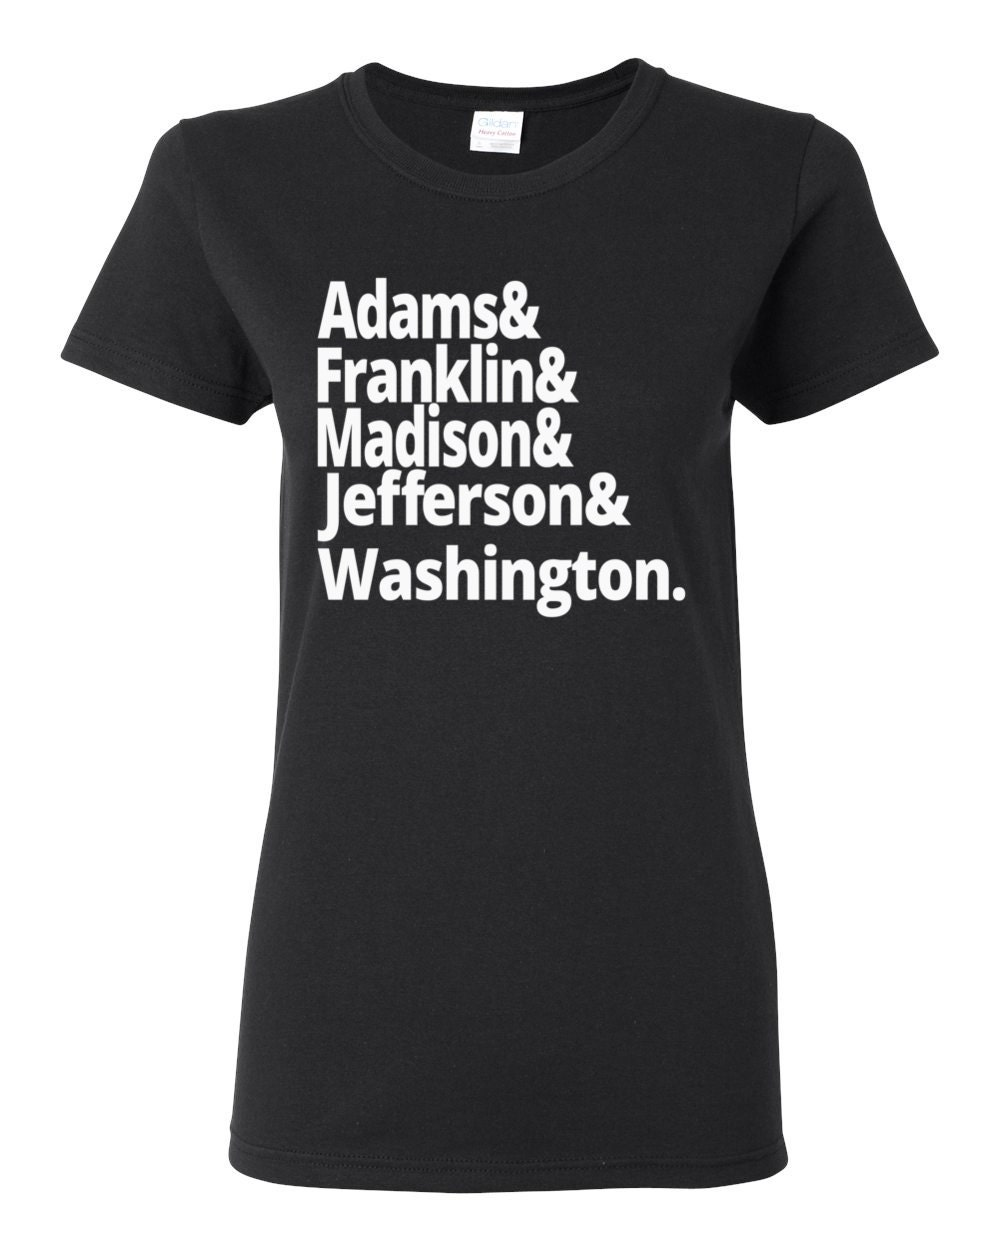 US History - American Founding Fathers - Adams, Franklin, Madison, Jefferson and Washington - US History T-shirt